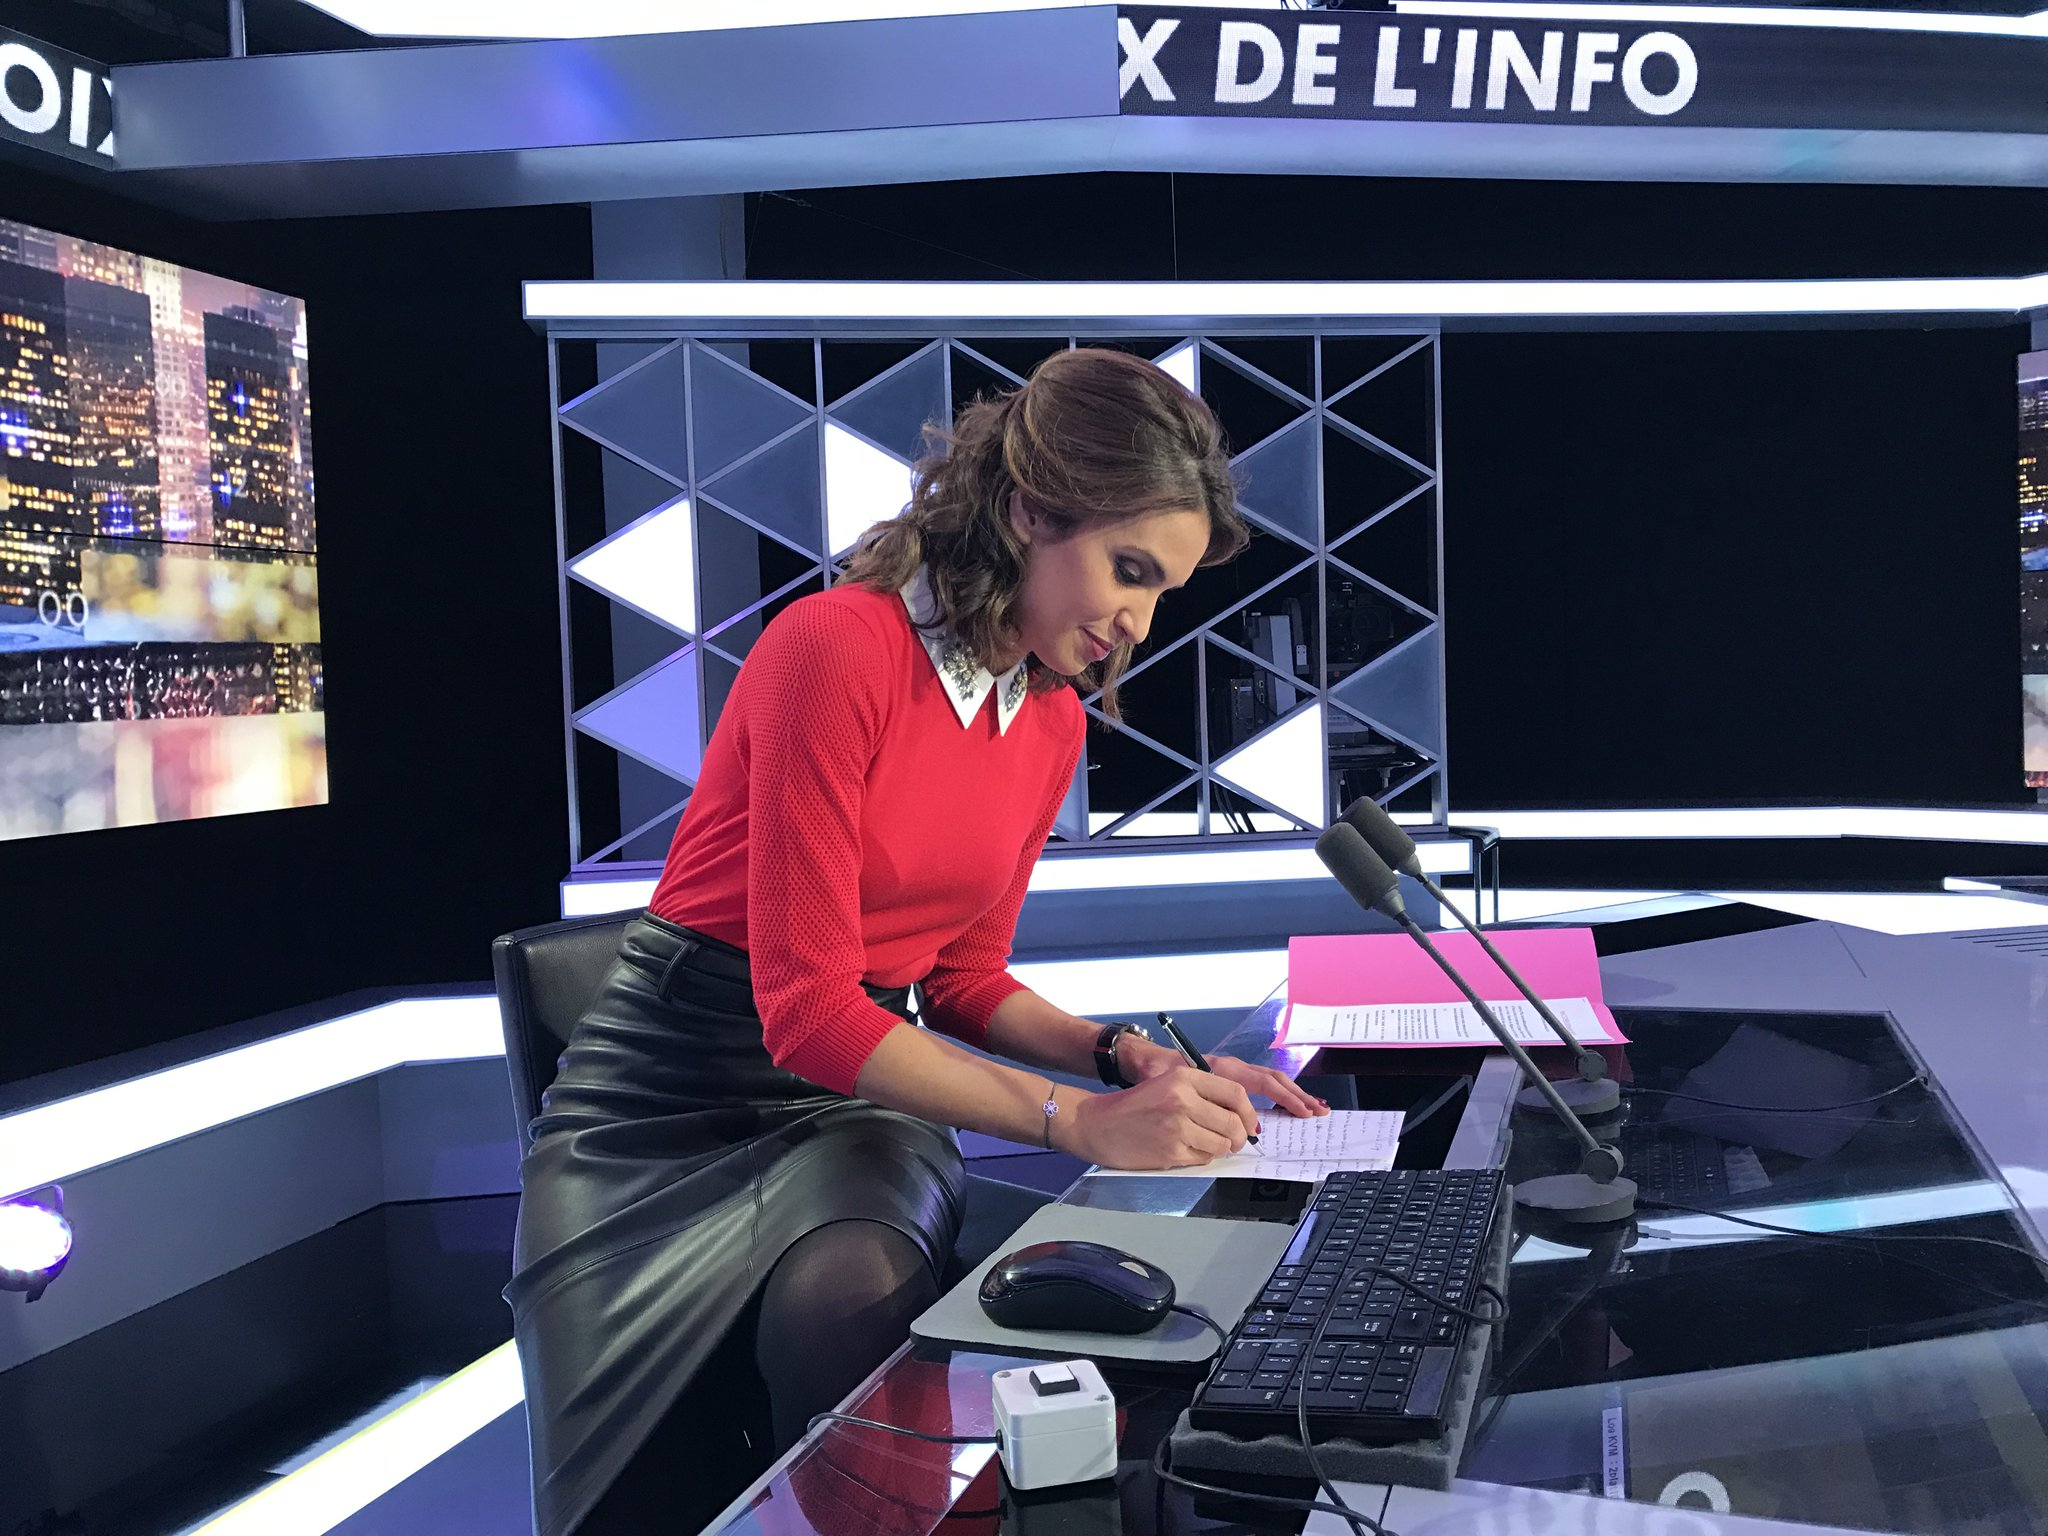 Mabrouk sonia on twitter pr paration avant le direct 17 19h lesvoixdelinfo cnews sur - Sonia mabrouk son mari ...